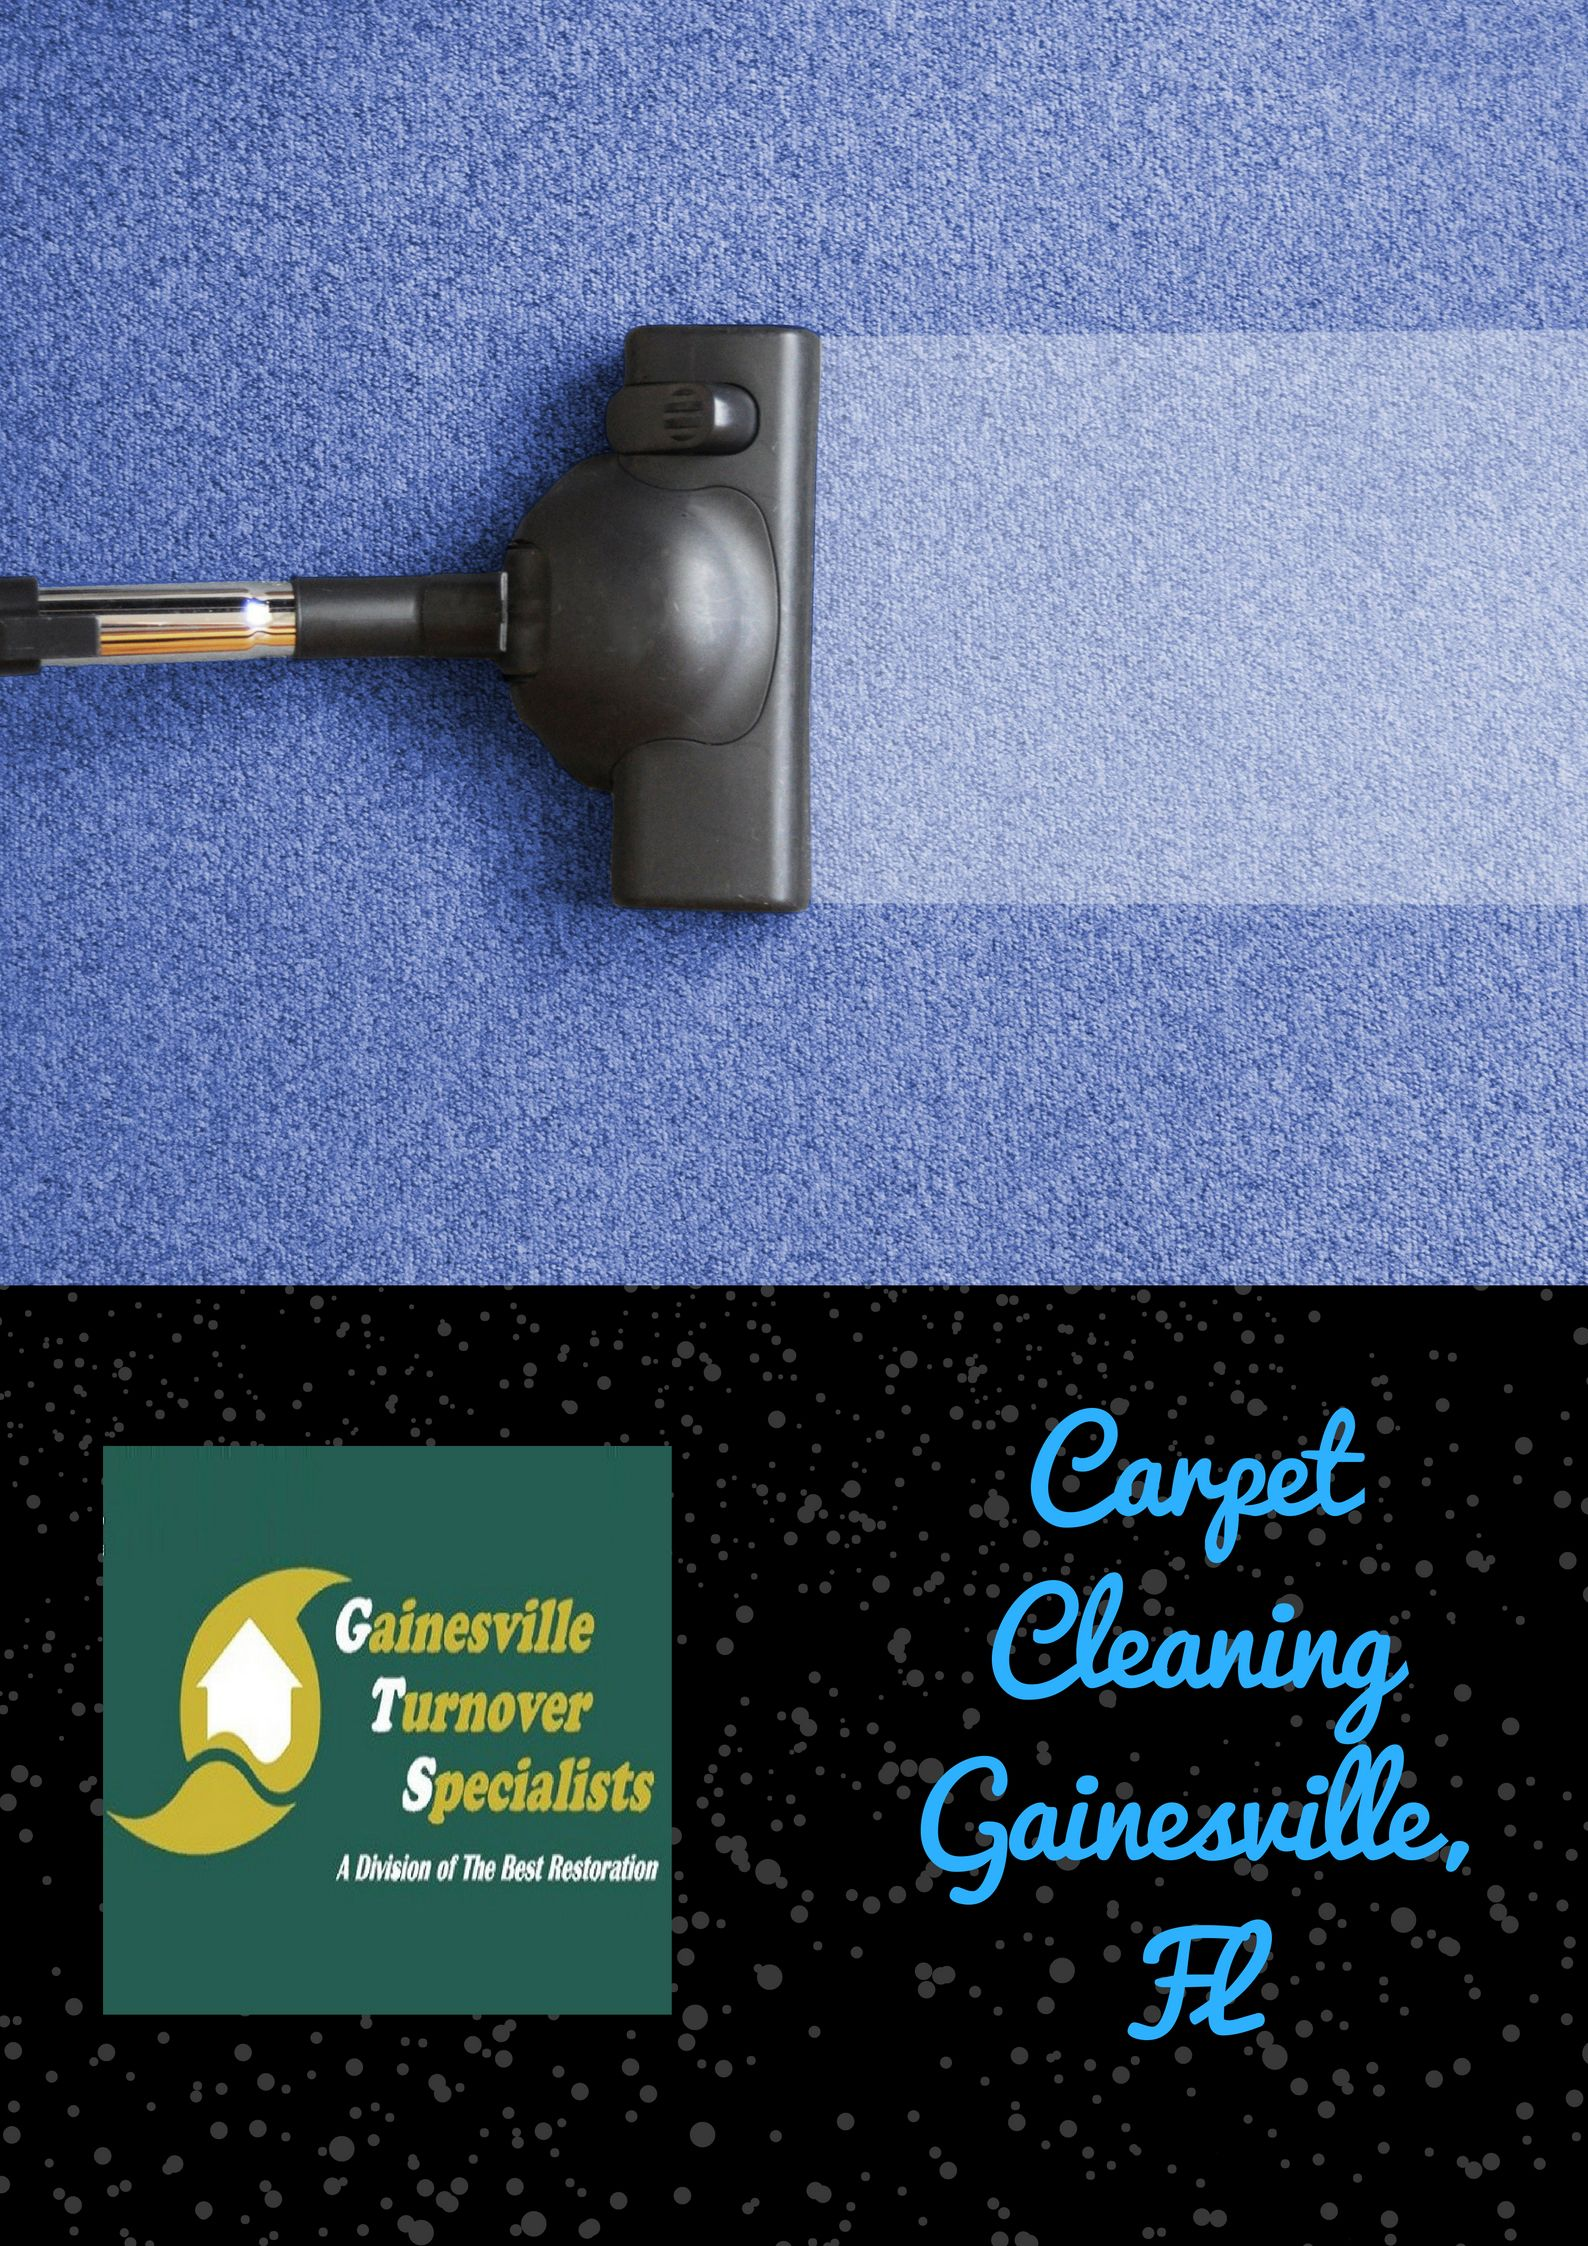 Carpet Cleaning Gainesville Fl Carpet Cleaners Gainesville Fl How To Clean Carpet Natural Carpet Cleaning Commercial Carpet Cleaning